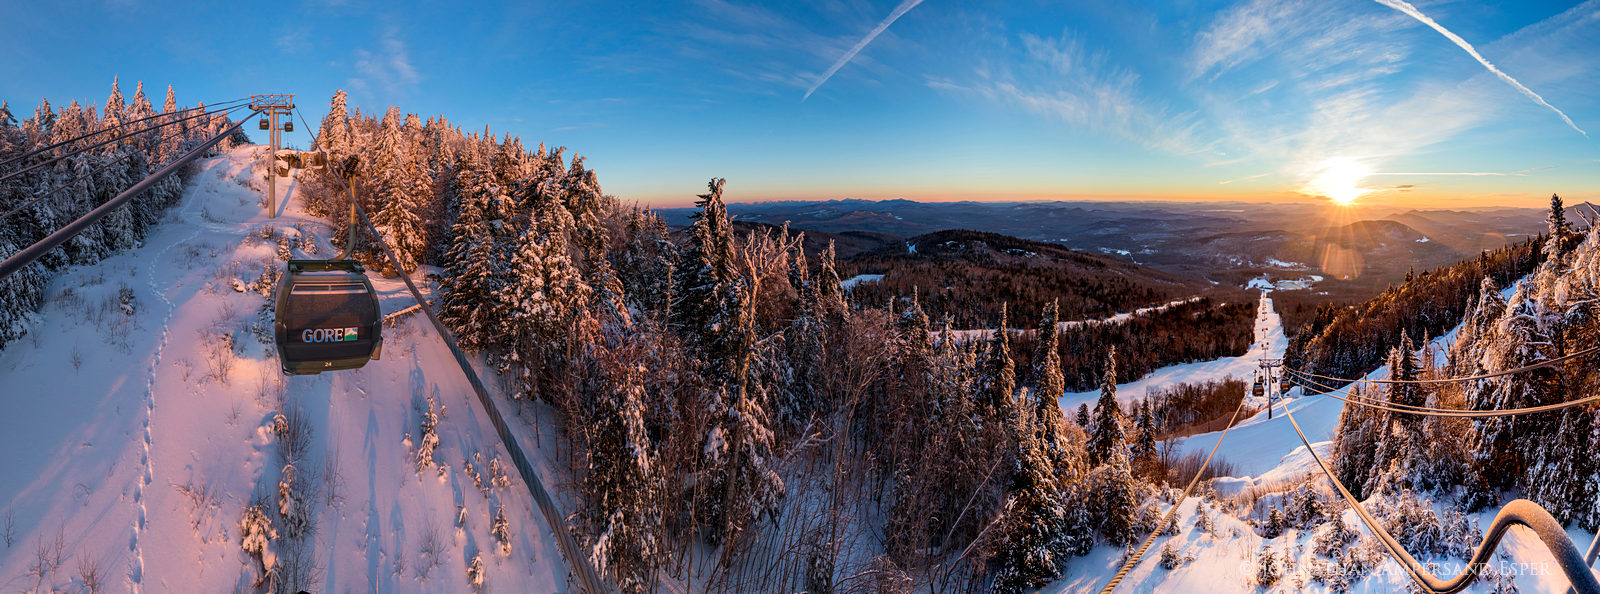 Gore Mountain,Gore Mt,Gore Mountain Ski Area,Northwoods Gondola,lift tower,winter,panorama,High Peaks,, photo